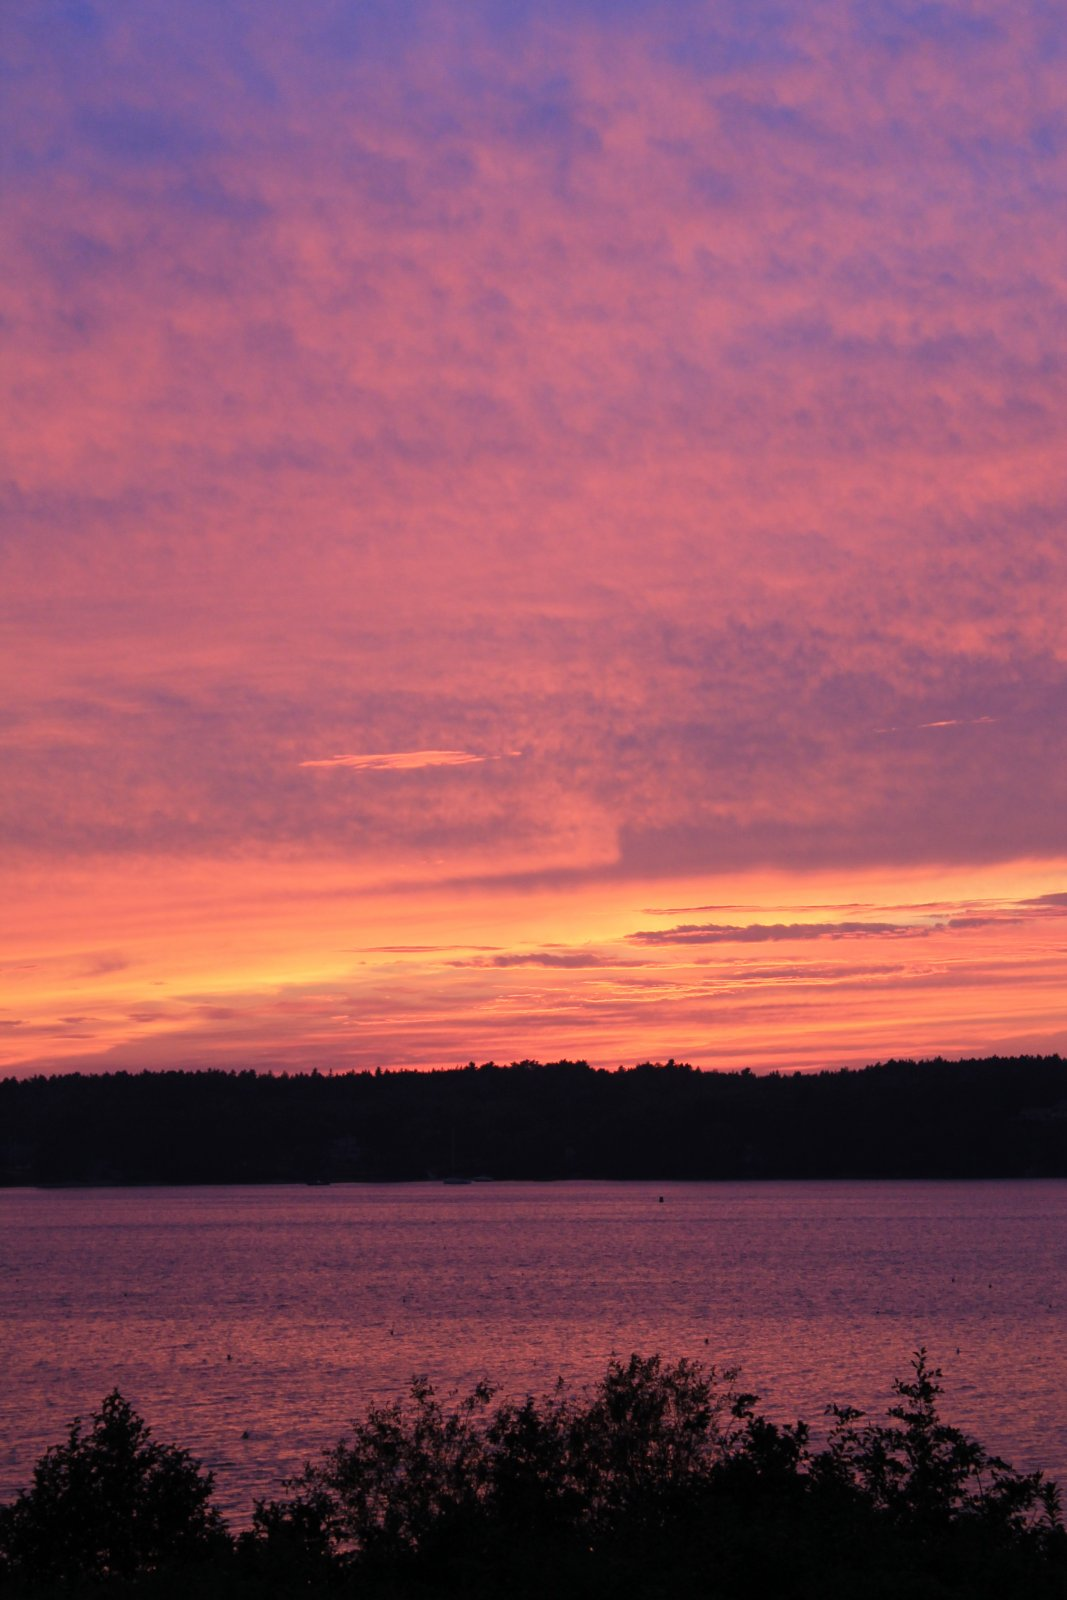 Click image for larger version  Name:Orr's Island Sunset 030.jpg Views:88 Size:172.3 KB ID:193581